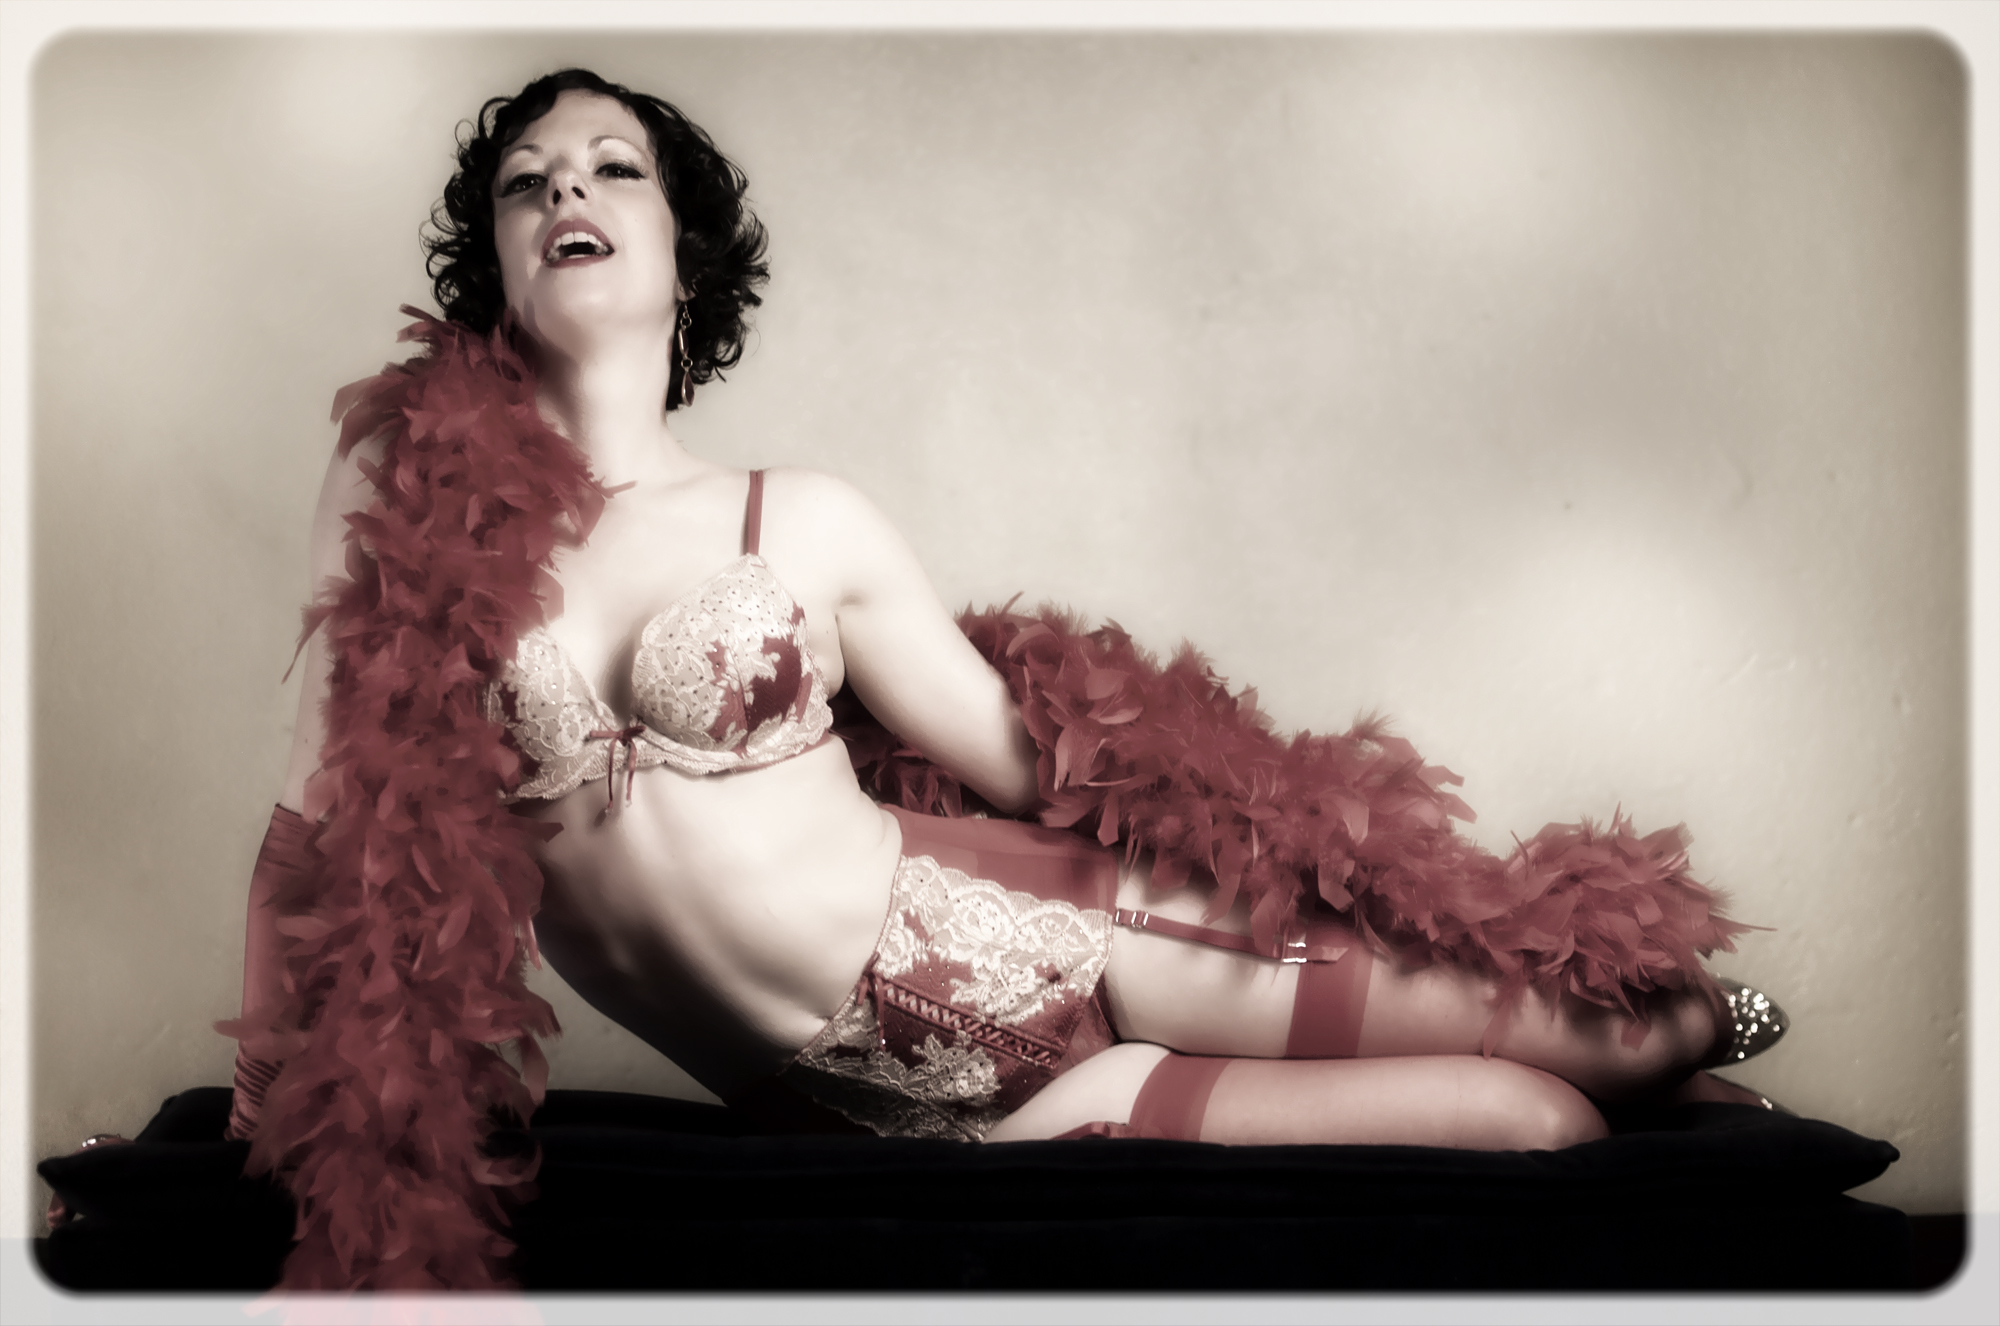 Asheville dance teacher Kathleen Hahn kicks off new burlesque, striptease and acting classes